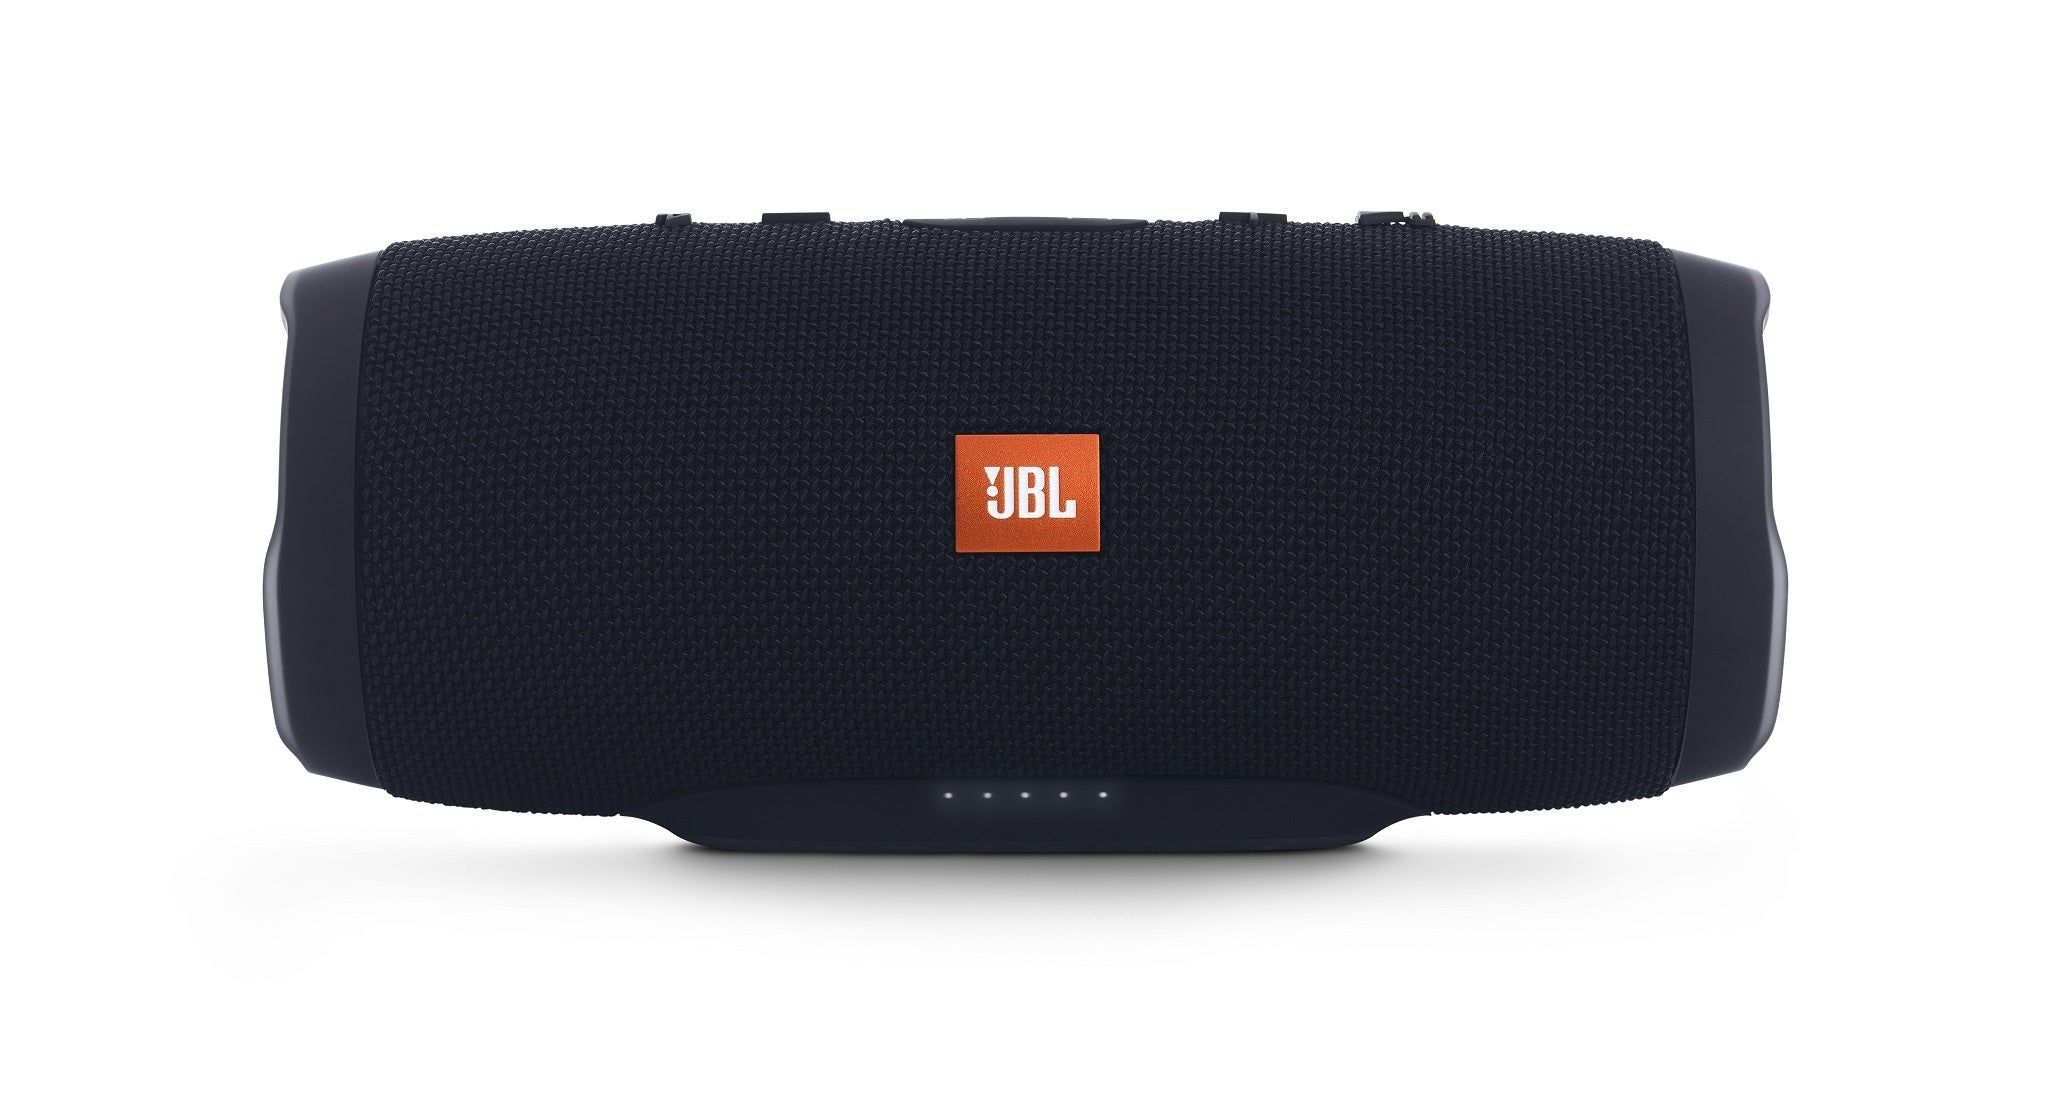 jbl speakerss. jbl charge3 black front x2 speakerss